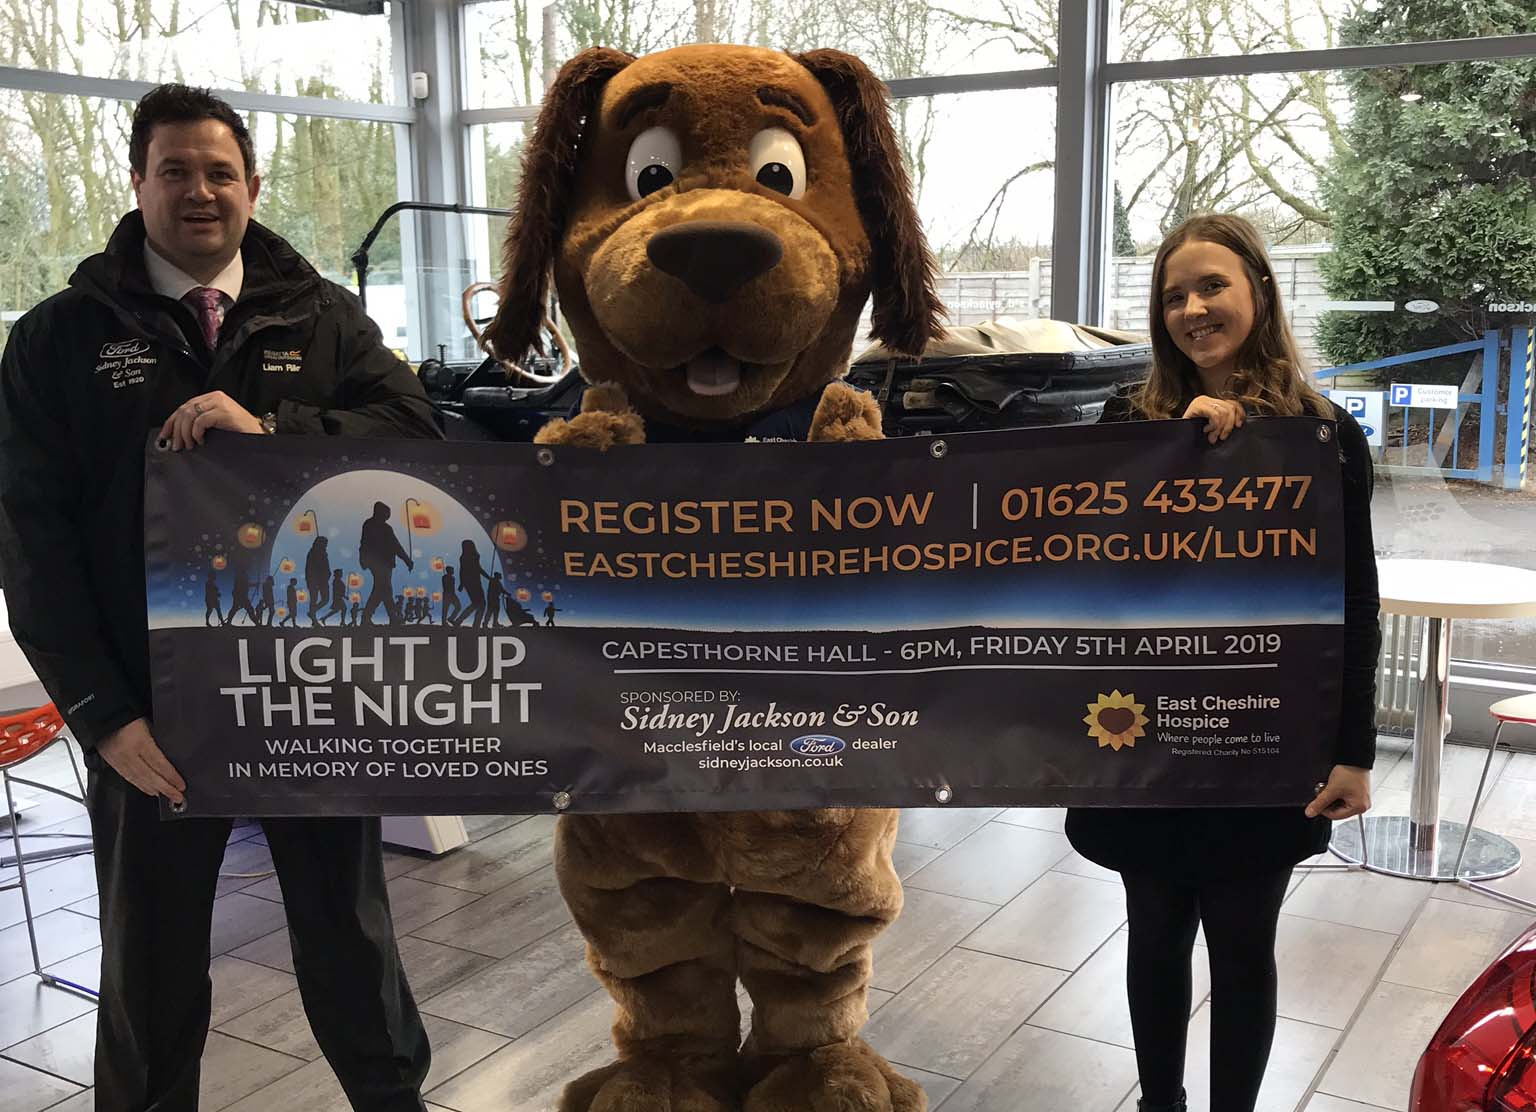 Sidney Jackson are sponsoring Light Up The Night